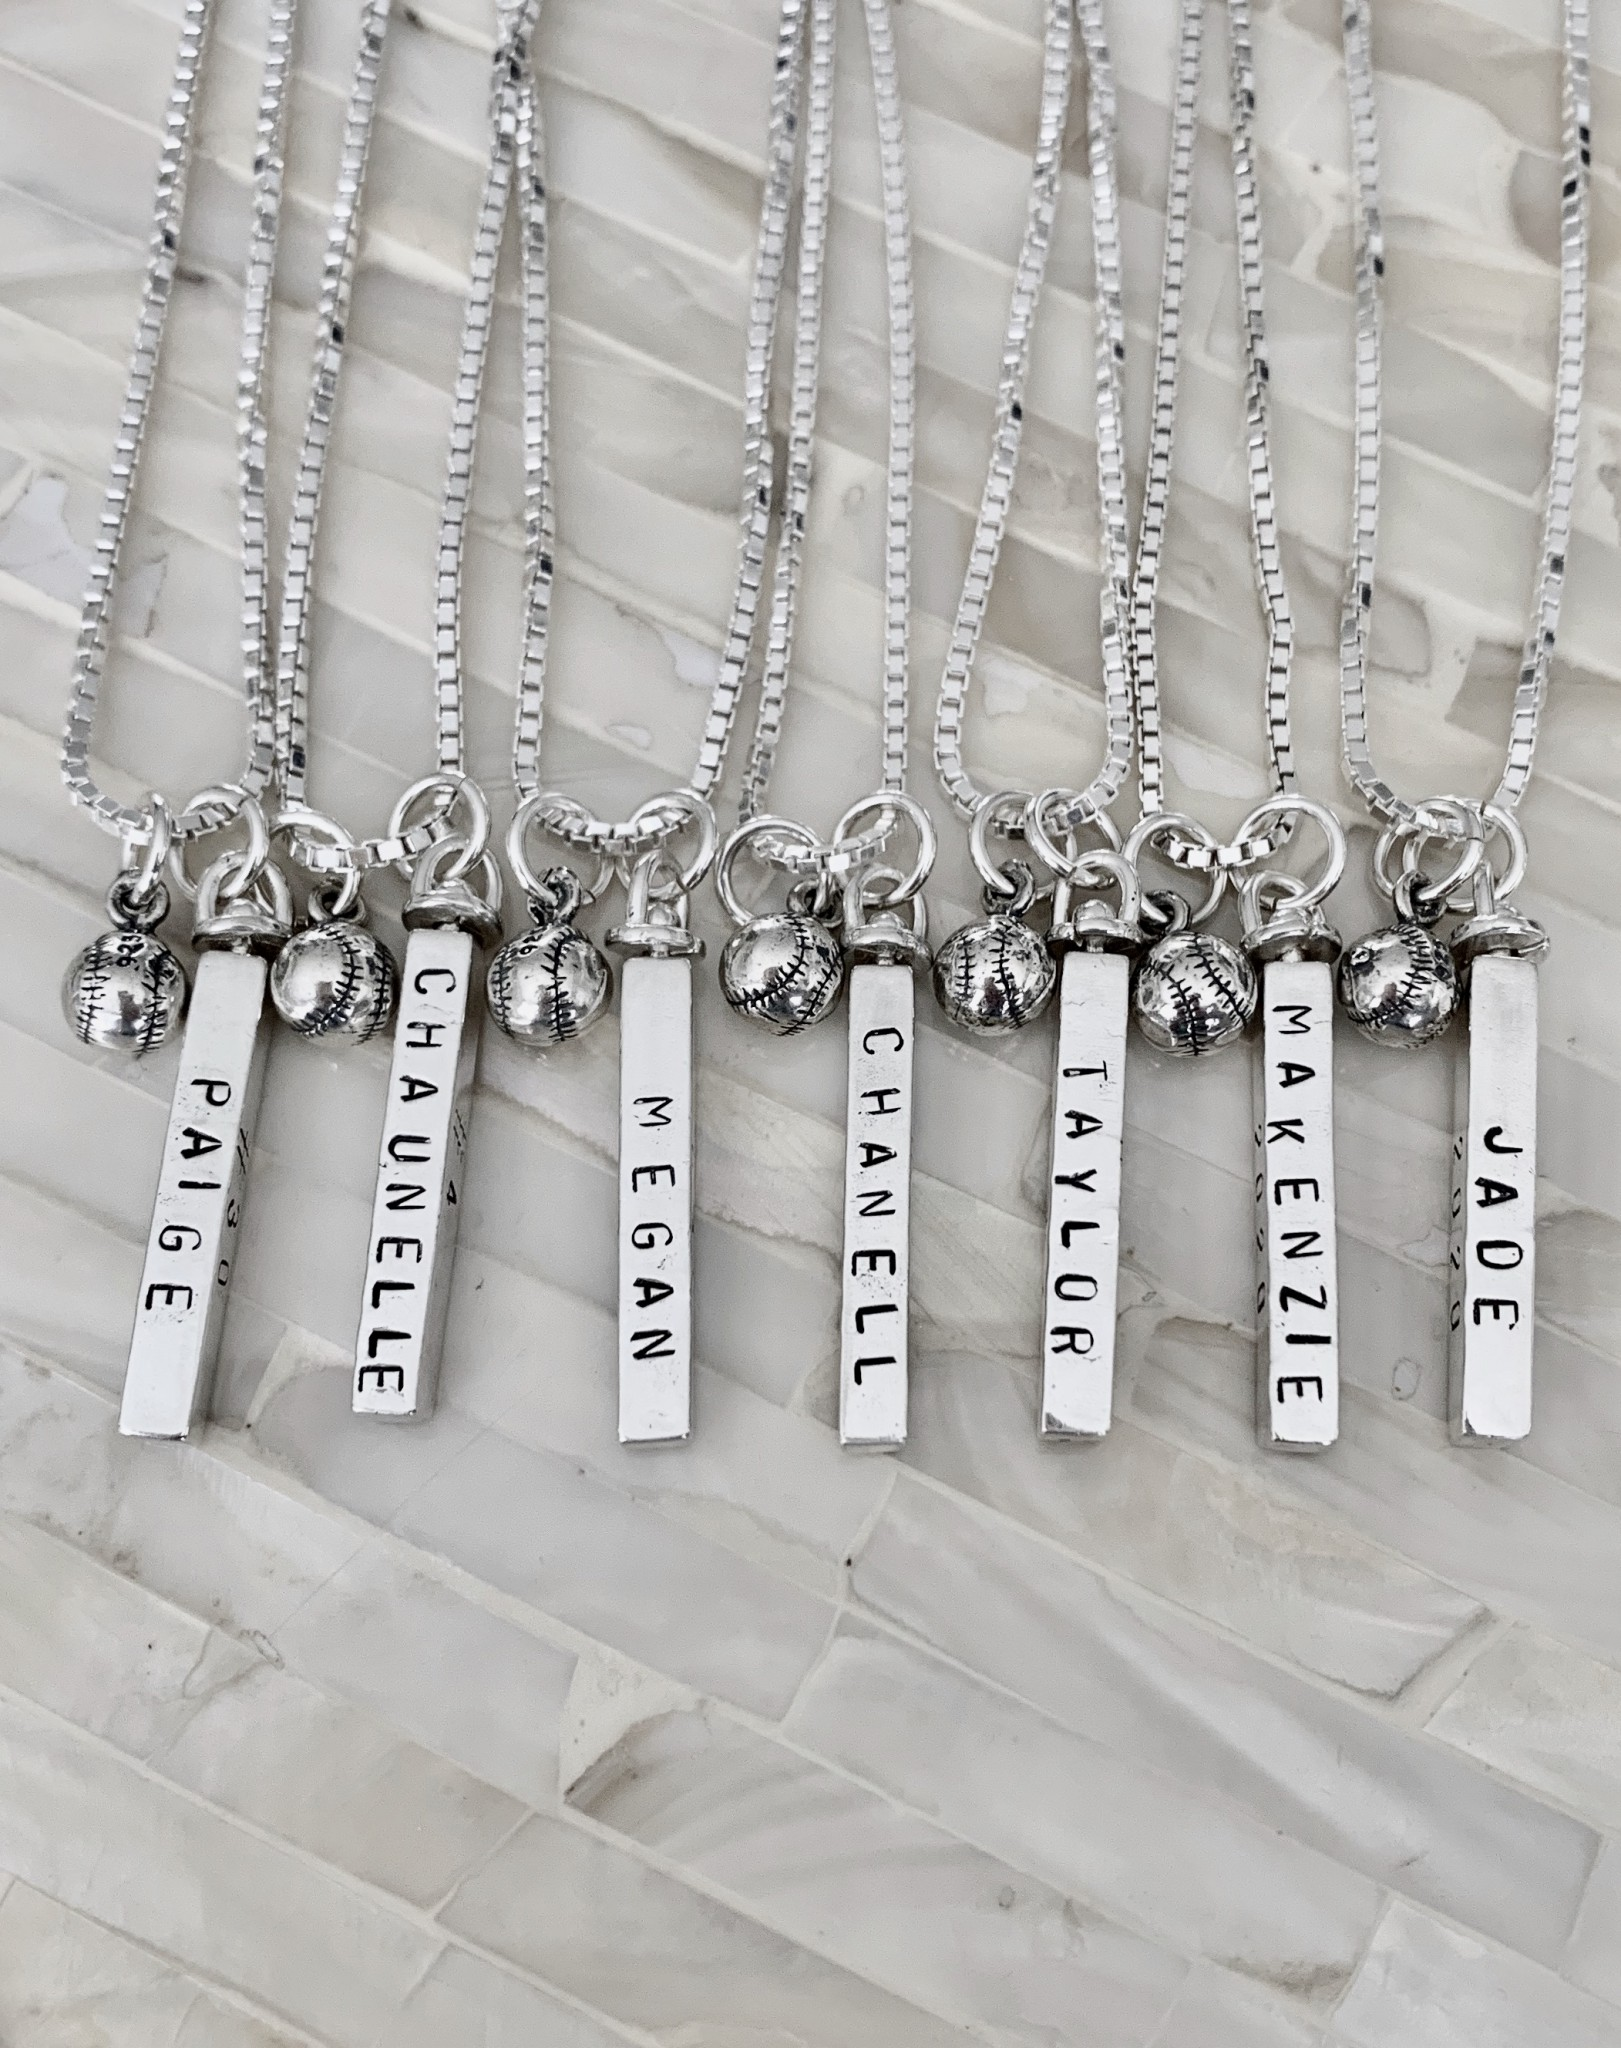 softball player team name necklace